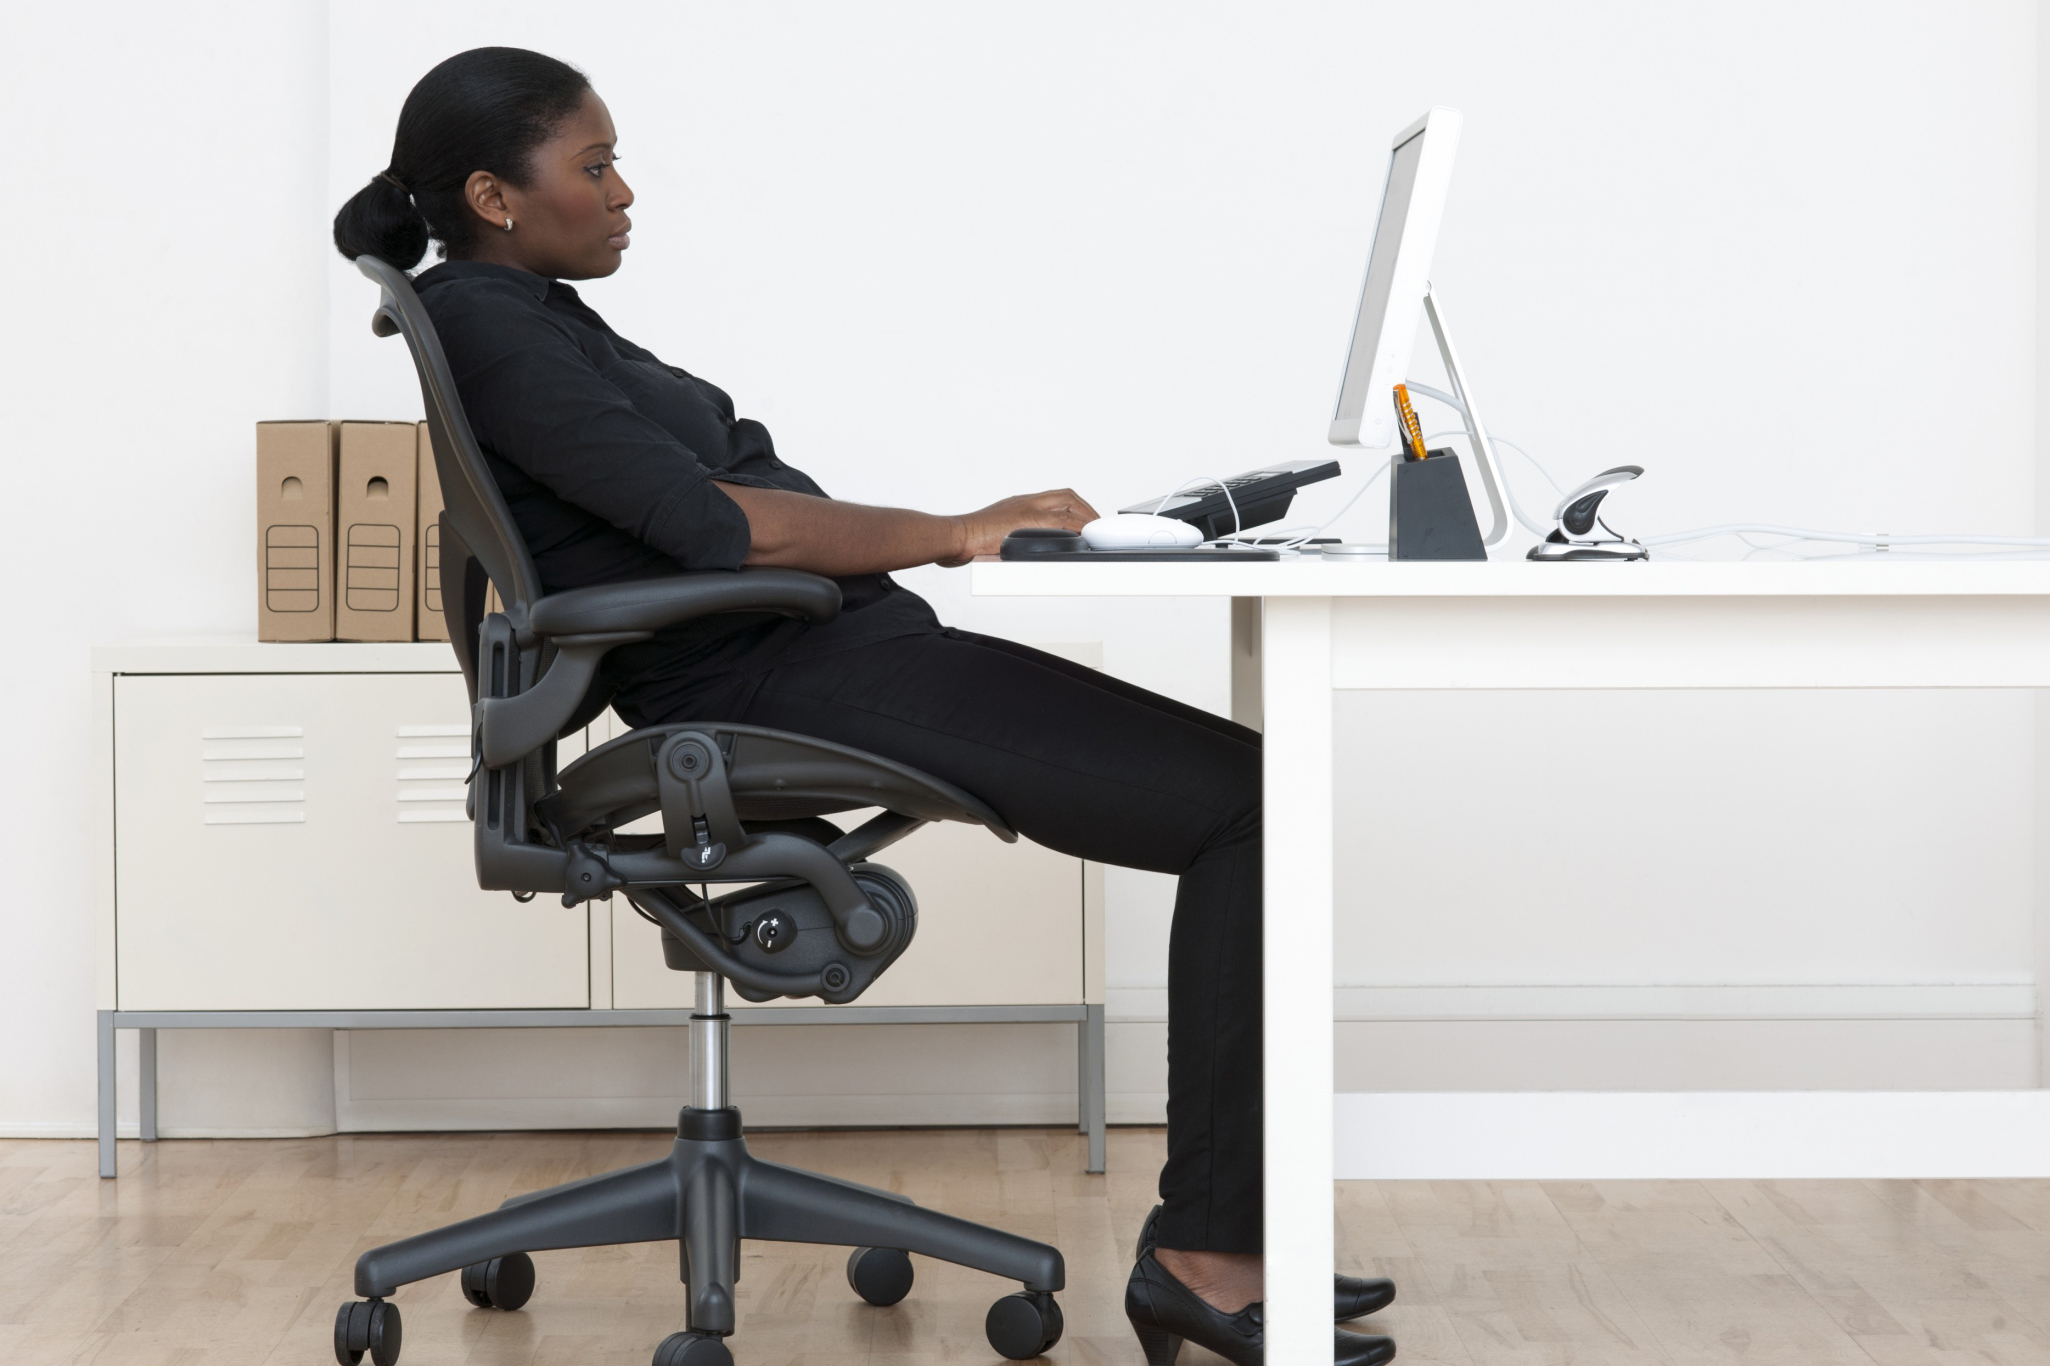 Office Chair Posture 7 Ways To Improve Your Posture Wellness Us News